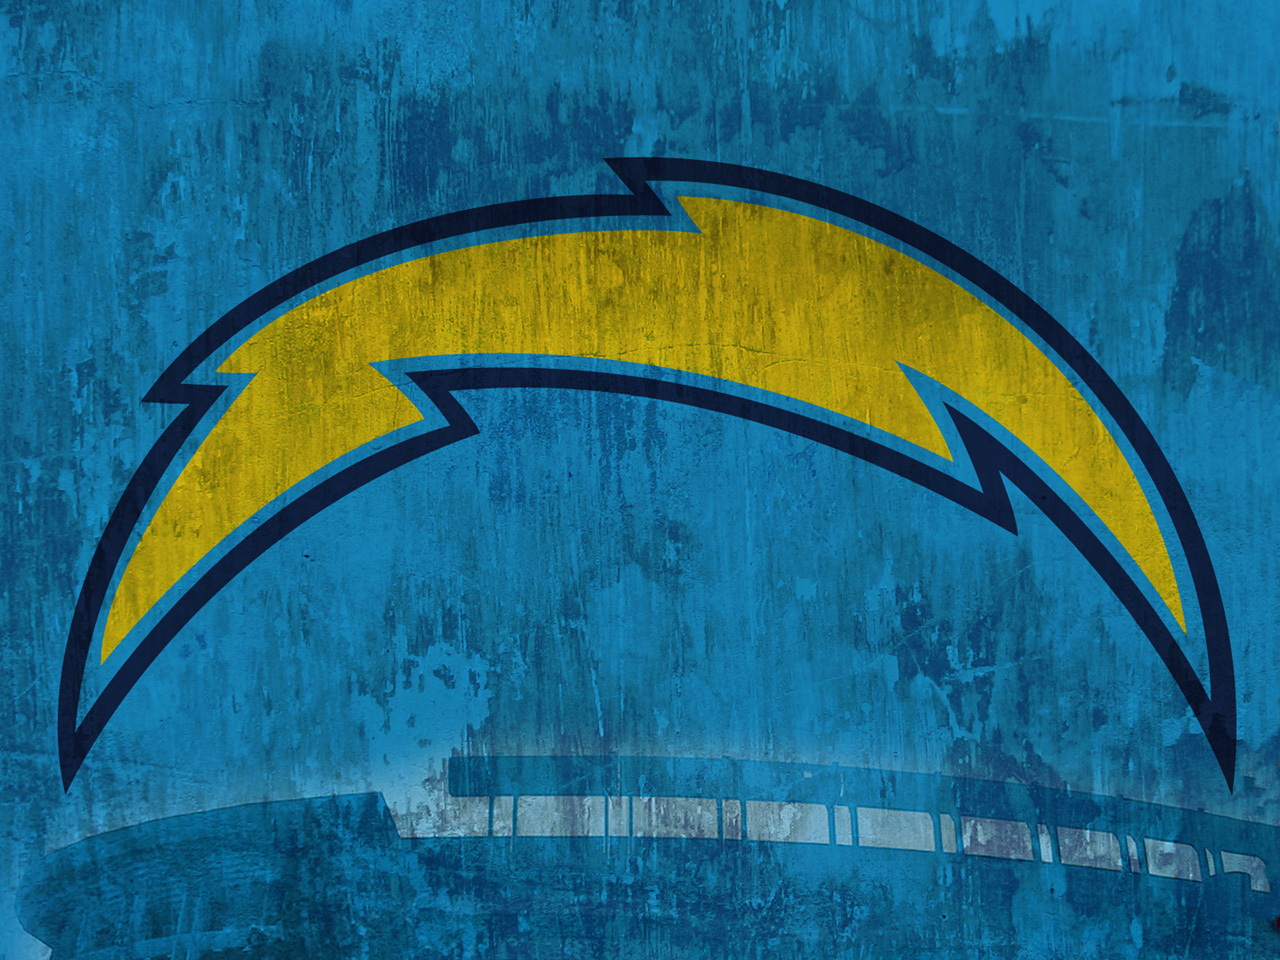 Free Download The Ultimate San Diego Chargers Desktop Wallpaper